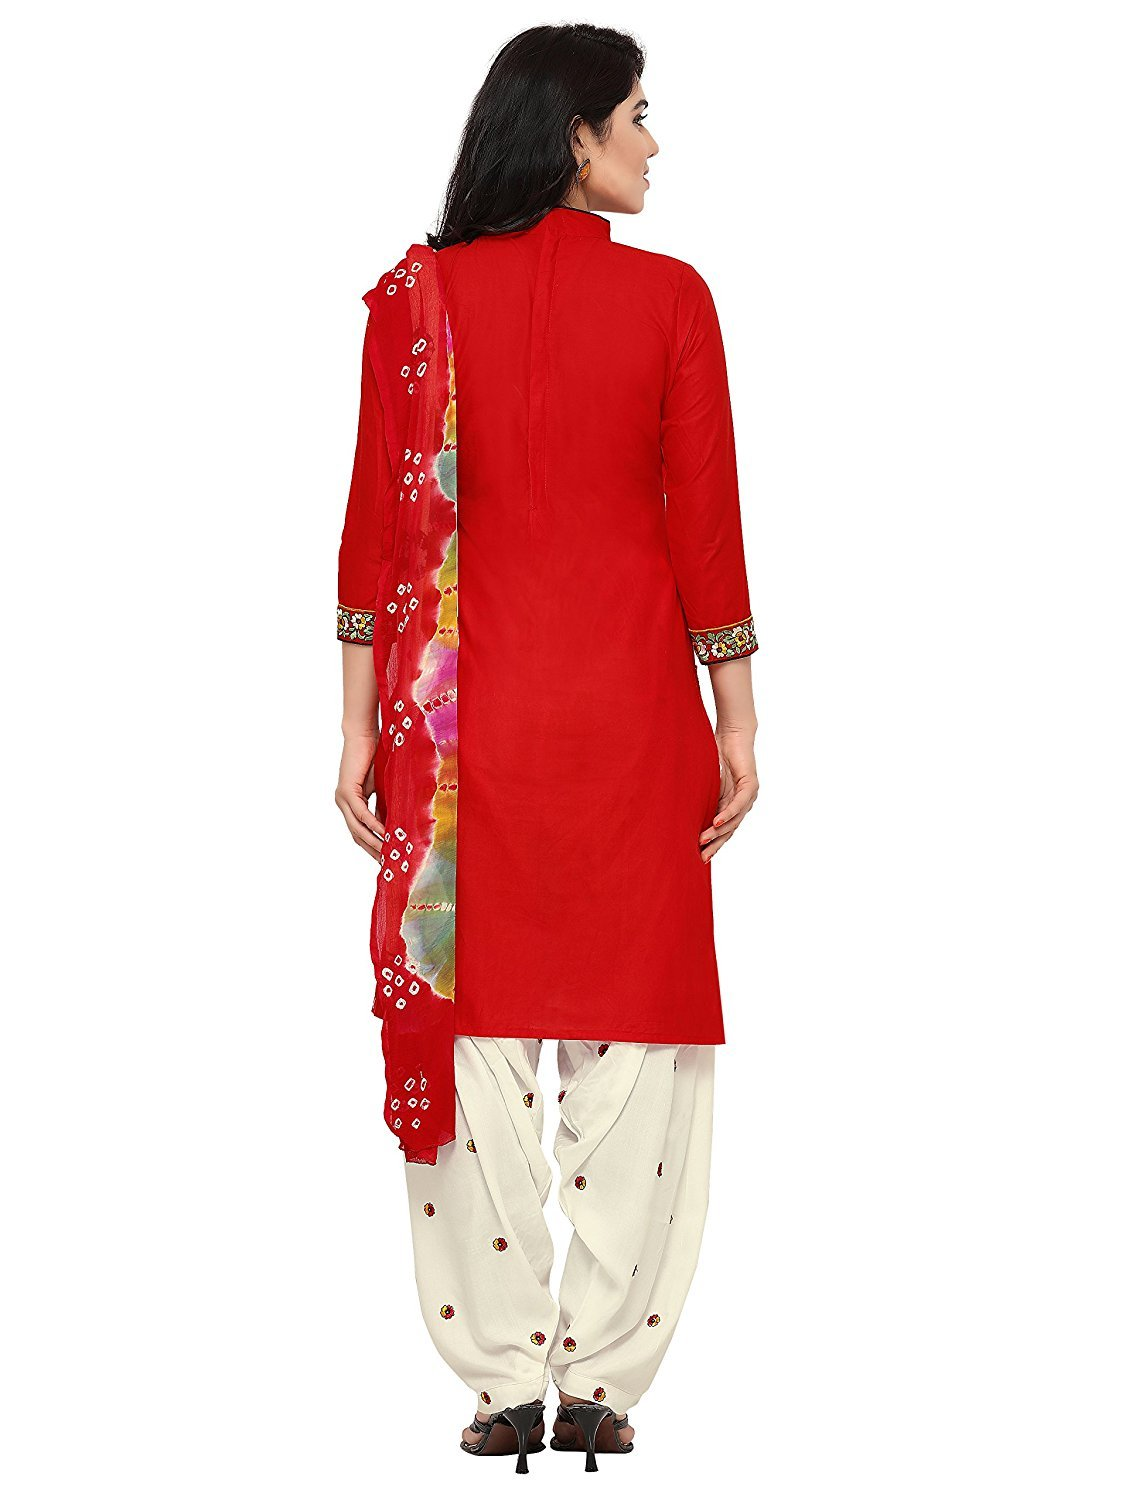 Dream Angel Fashion DreamAngel Women's Cotton Patiala Salwar Suit (Ready Made) (Medium) by Dream Angel Fashion (Image #5)